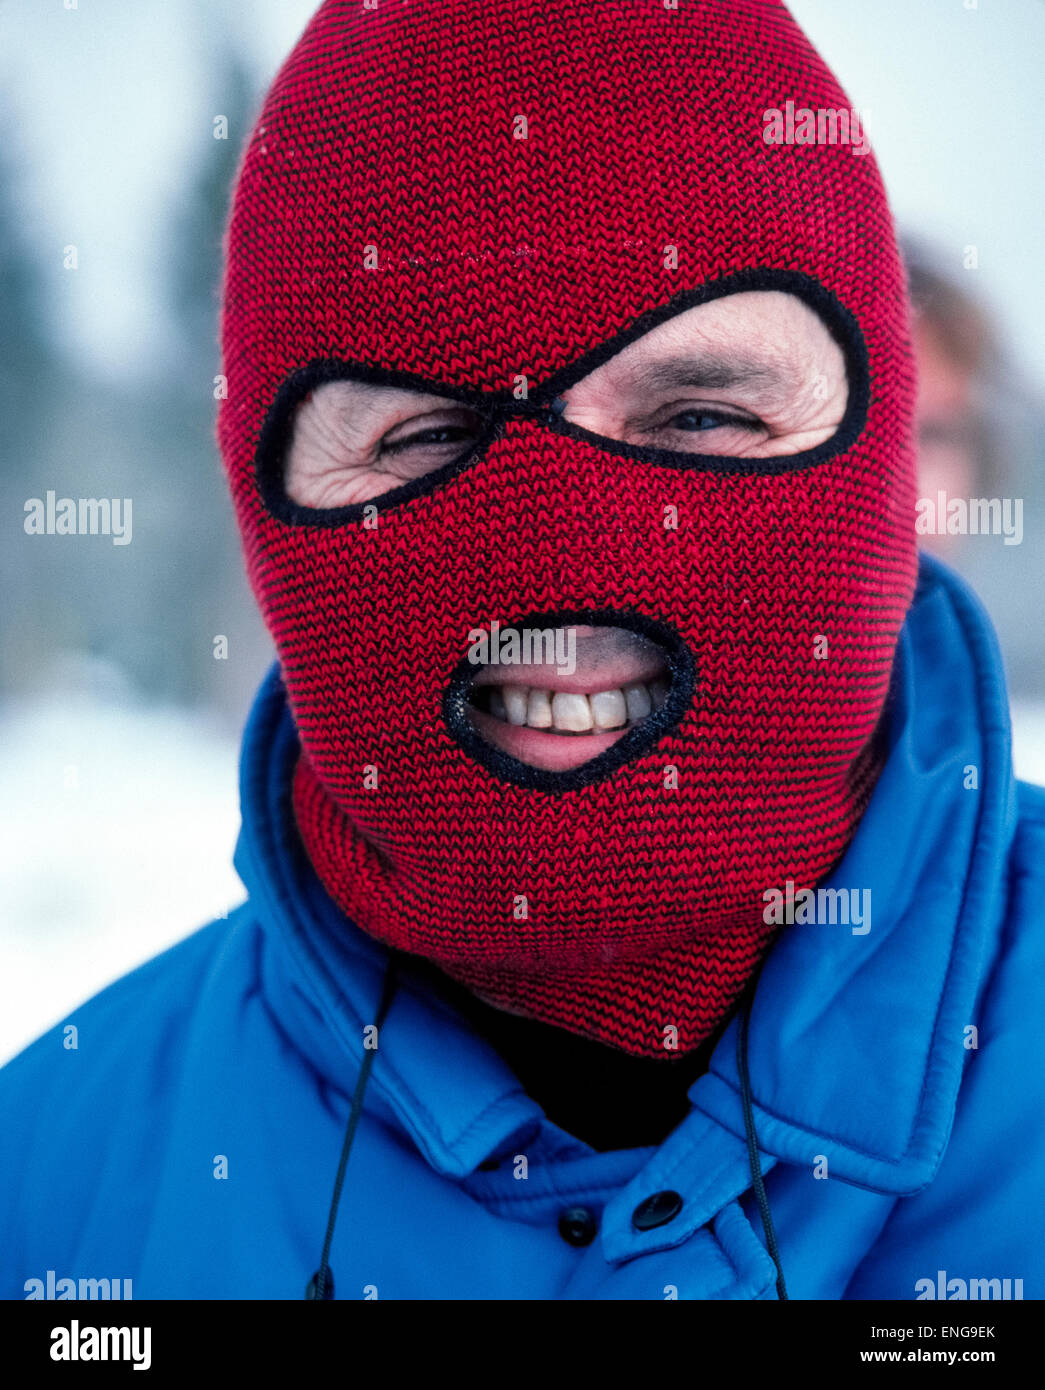 Balaclava Helmet Stock Photos & Balaclava Helmet Stock Images - Alamy